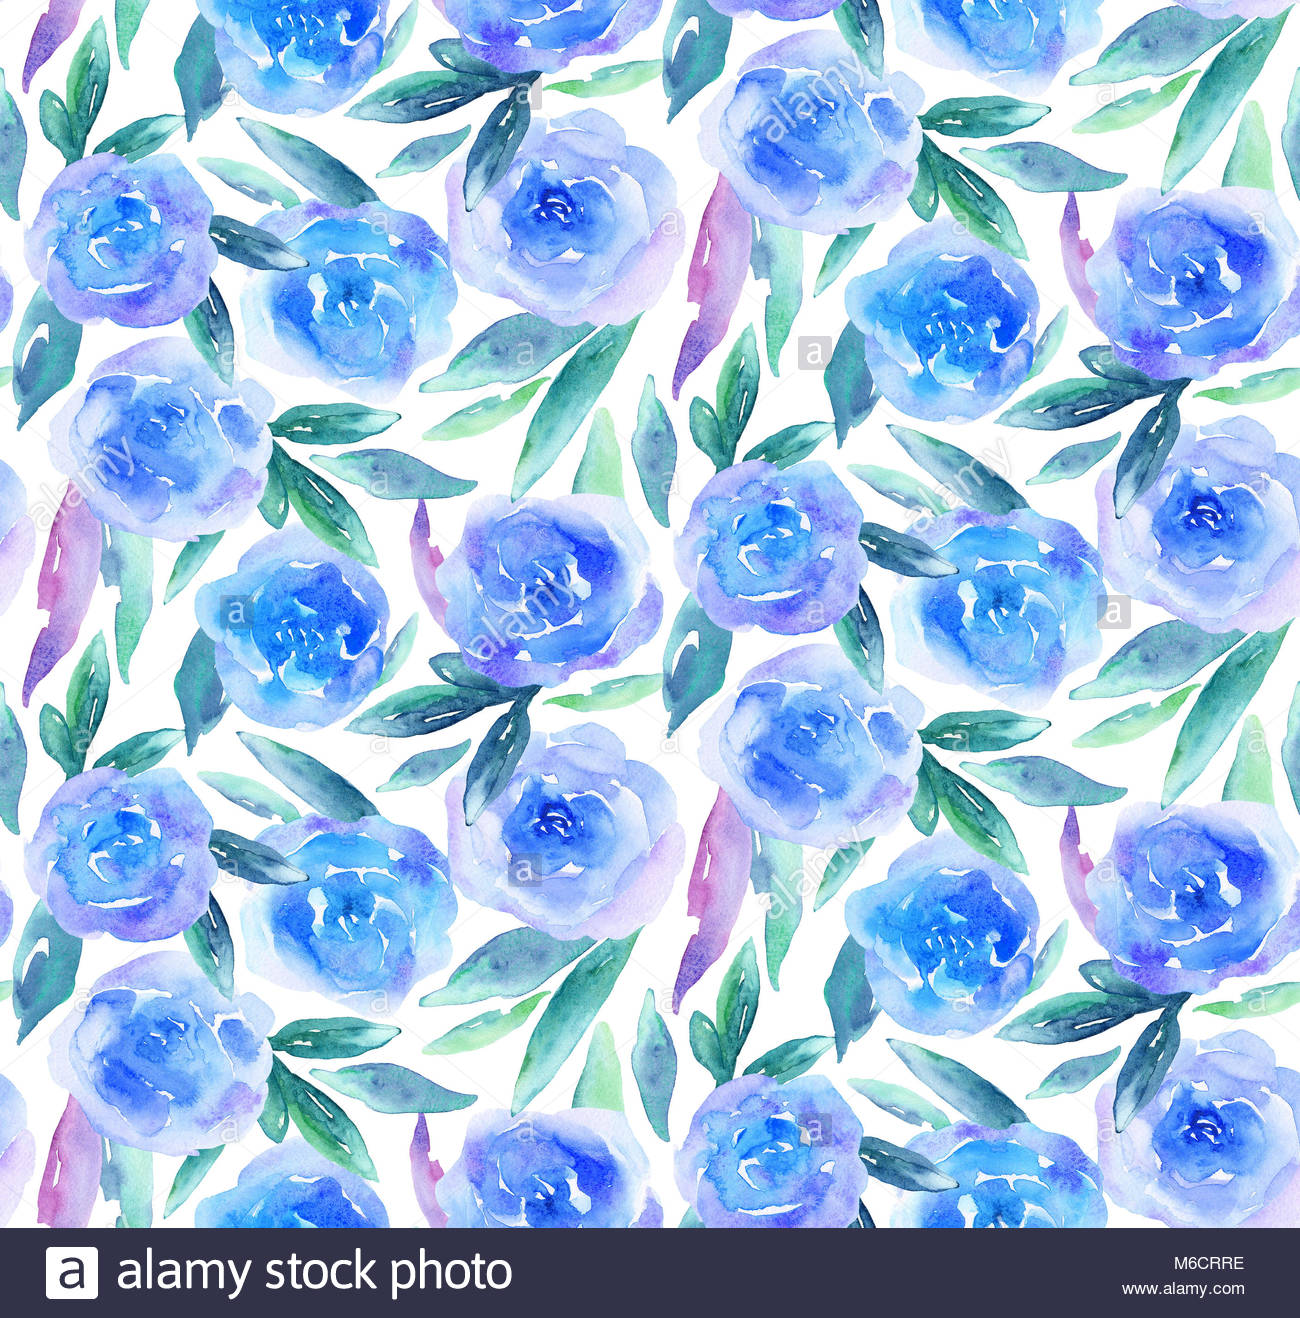 blau aquarell blumen muster teal floral background stockfoto bild 176073730 alamy. Black Bedroom Furniture Sets. Home Design Ideas